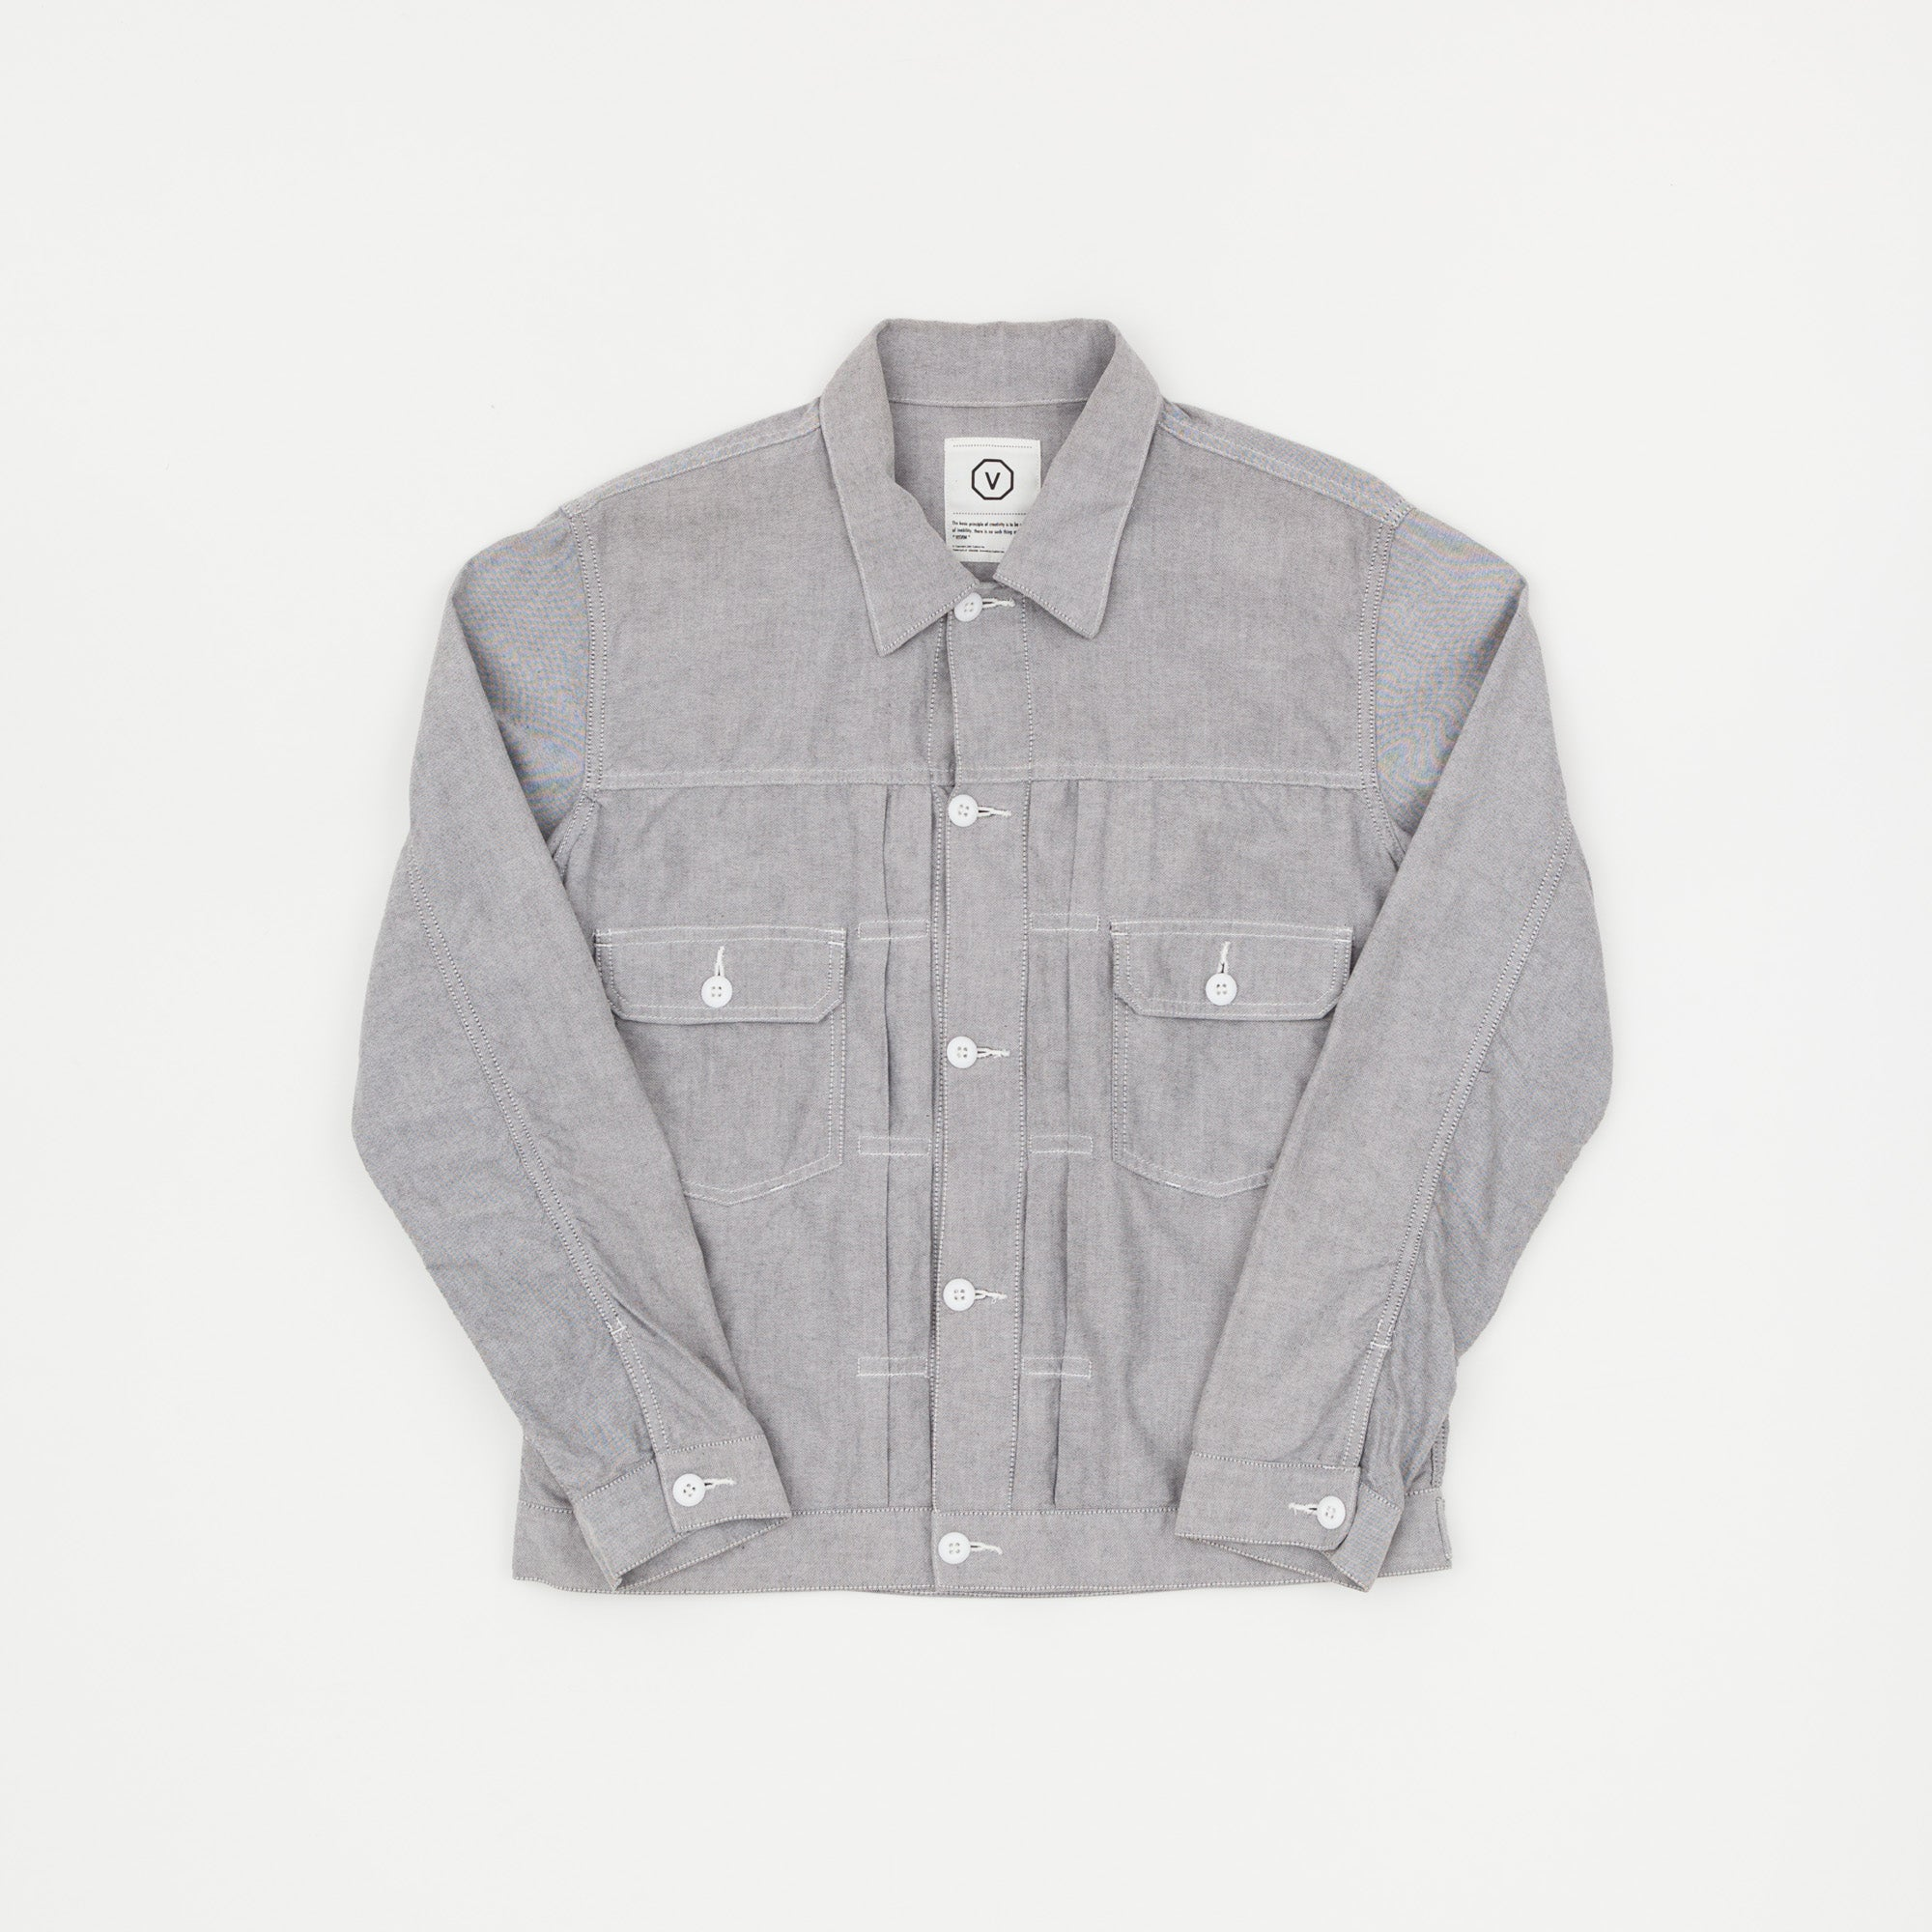 Visvim 101 Chambray Light Jacket